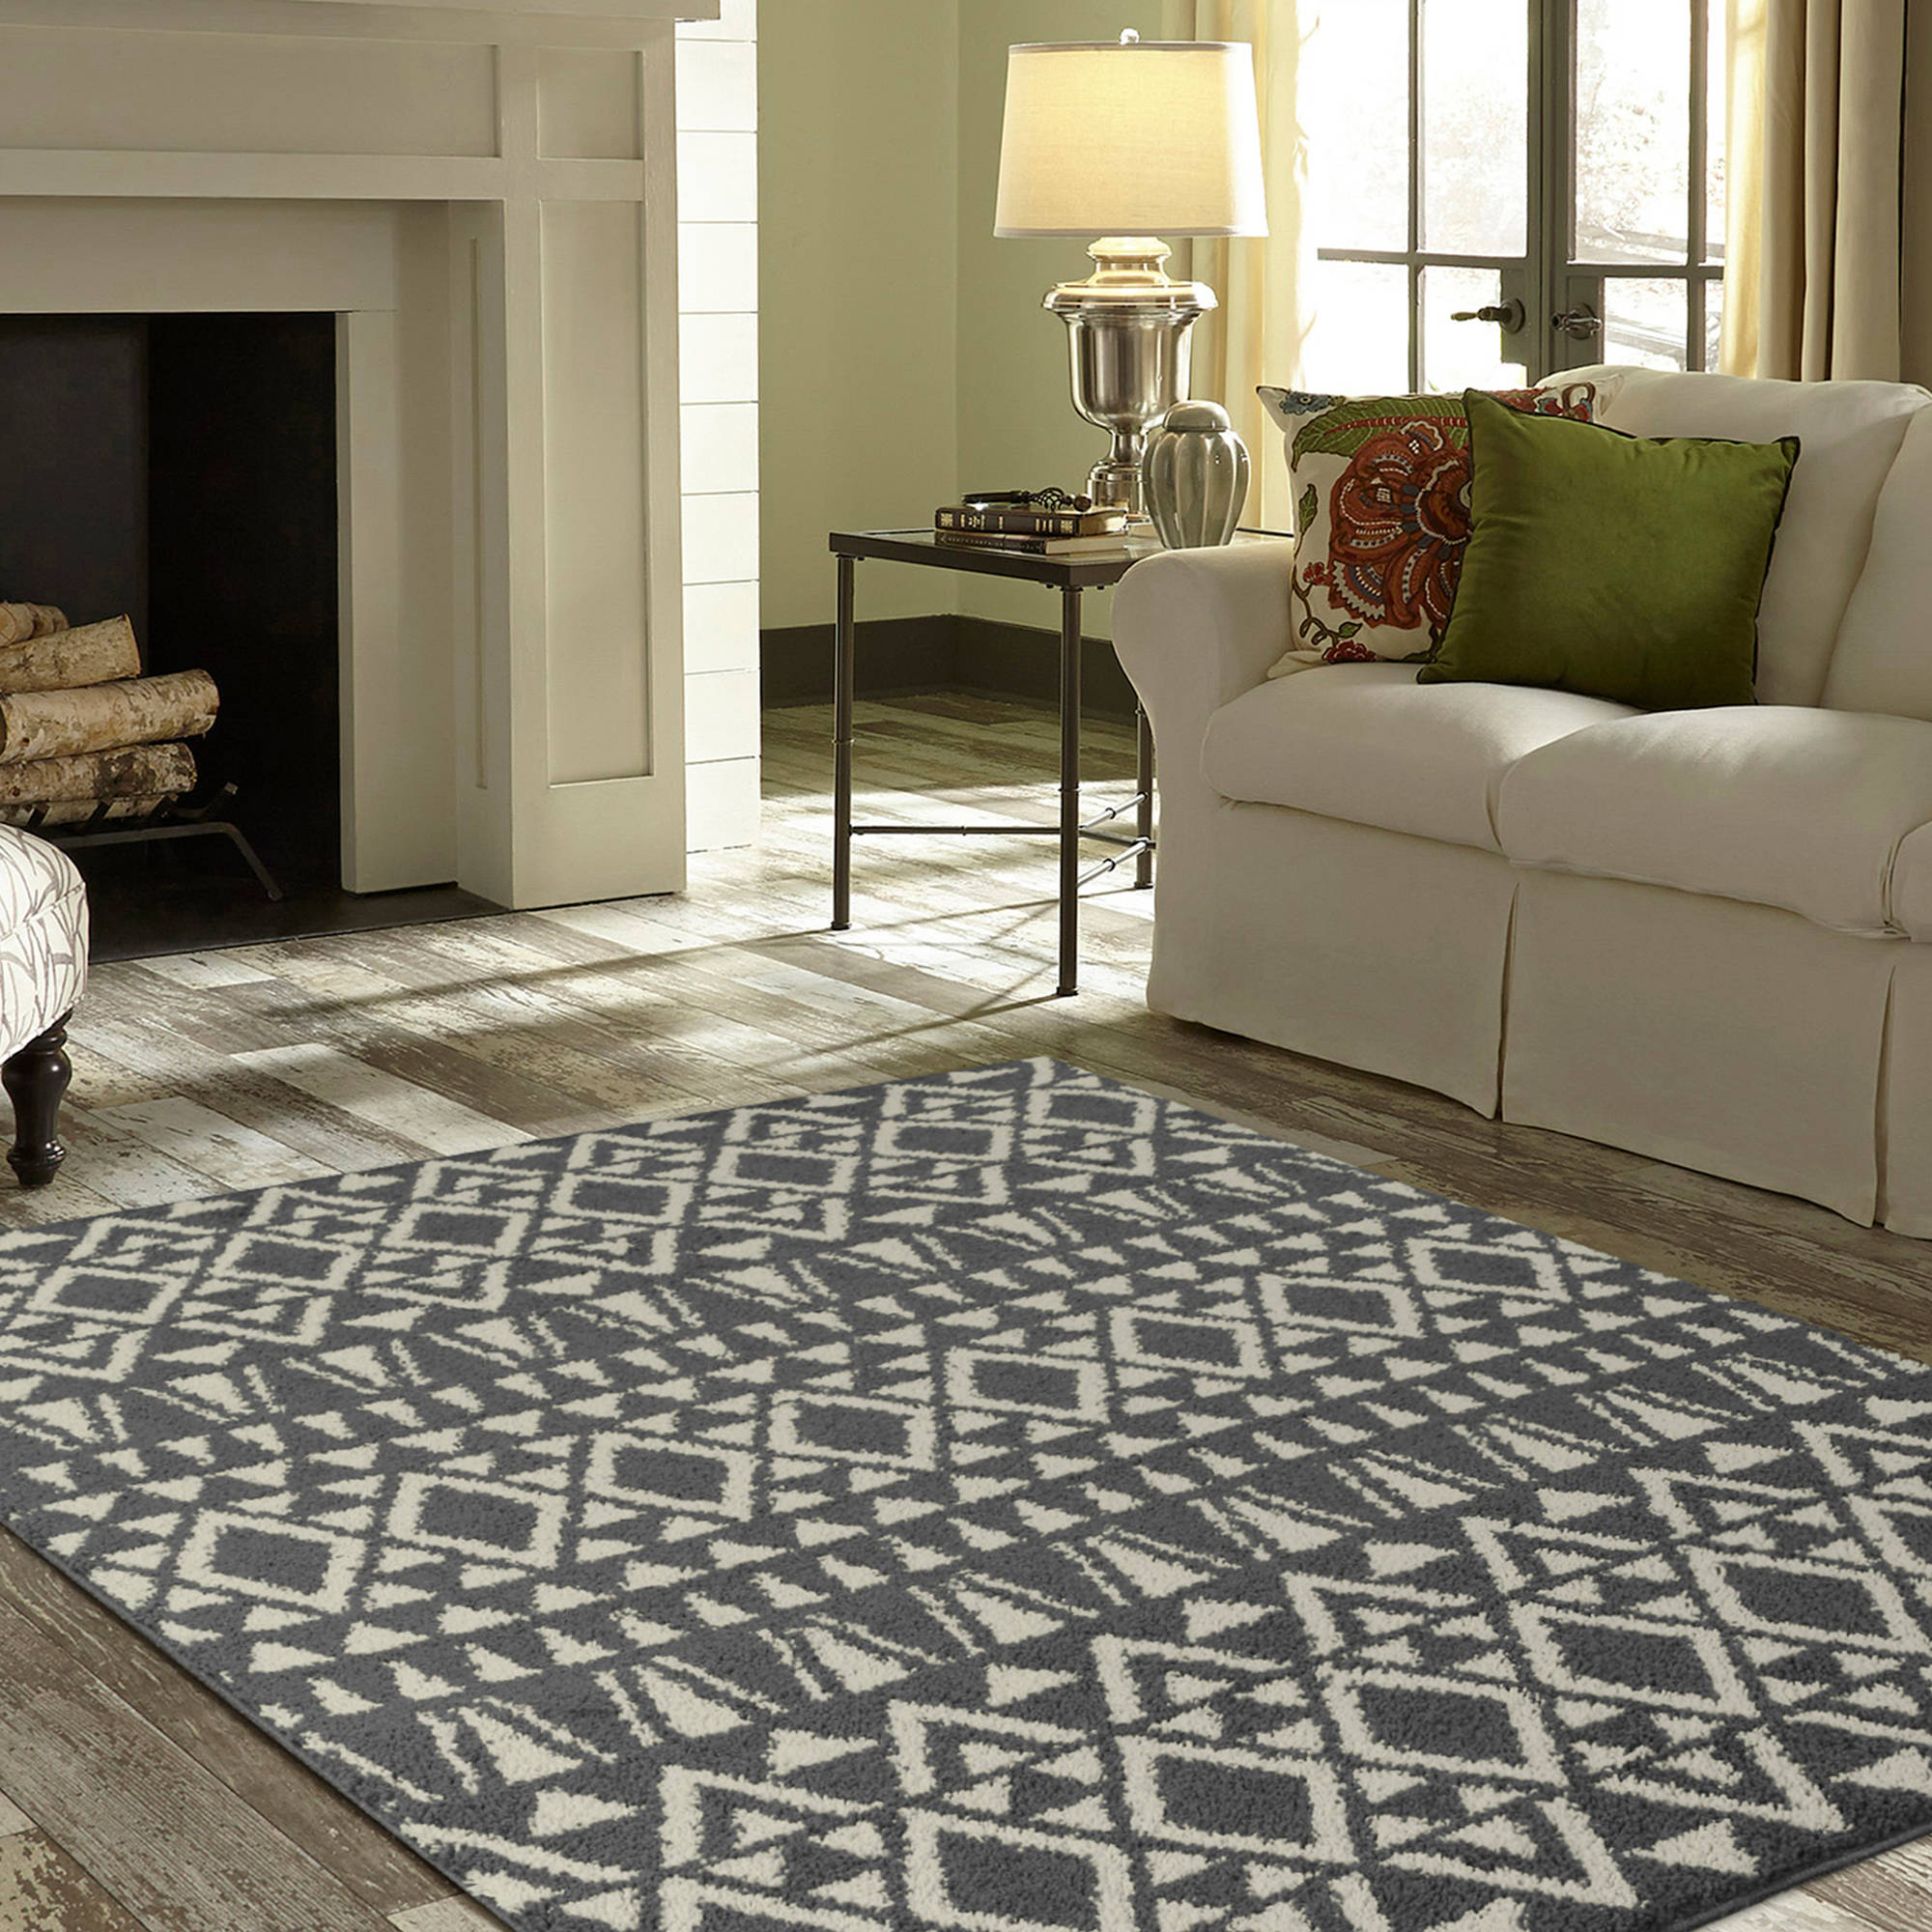 Shag Area Rugs For Living Room mainstays morgan shag area rugs or runner - walmart